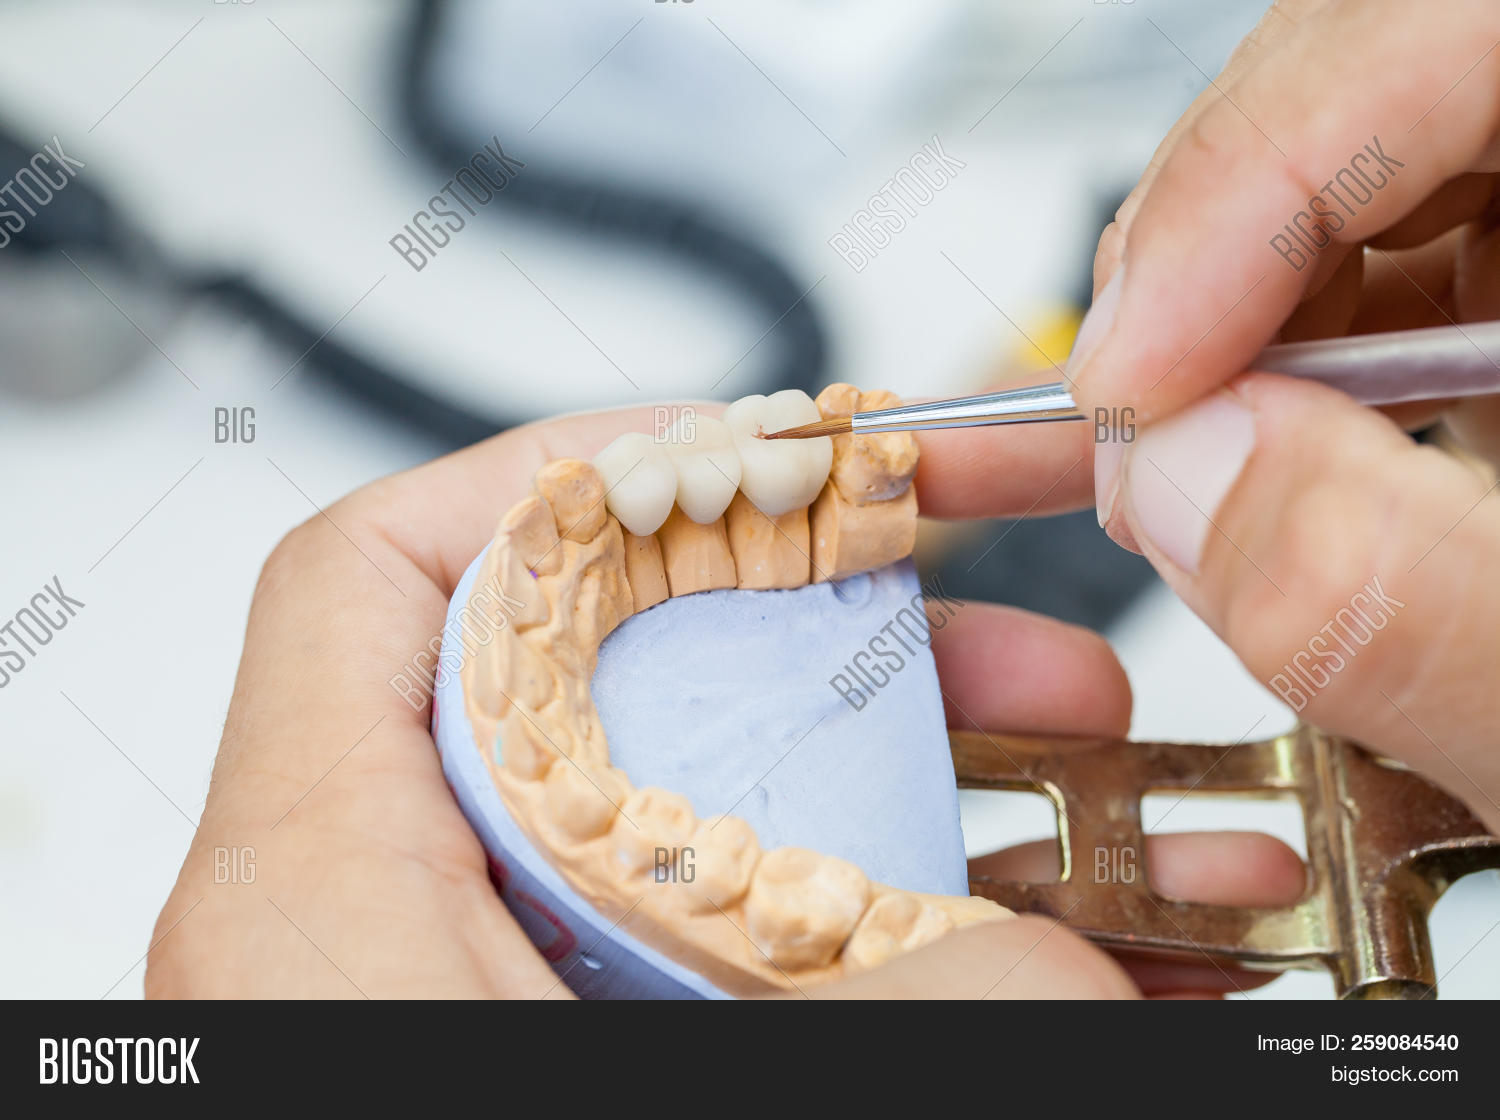 accurate,anatomy,apply,articulator,artificial,bridge,brush,care,cast,ceramic,clinic,close-up,crown,dental,dentist,dentistry,denture,doctor,dust,fake,hold,hygiene,implant,instrument,jaw,lab,laboratory,male,man,manufacturing,mechanic,medical,medicine,metal,model,mouth,oral,polish,porcelain,produce,production,profession,professional,prosthesis,prosthetics,technician,technology,tool,tooth,work